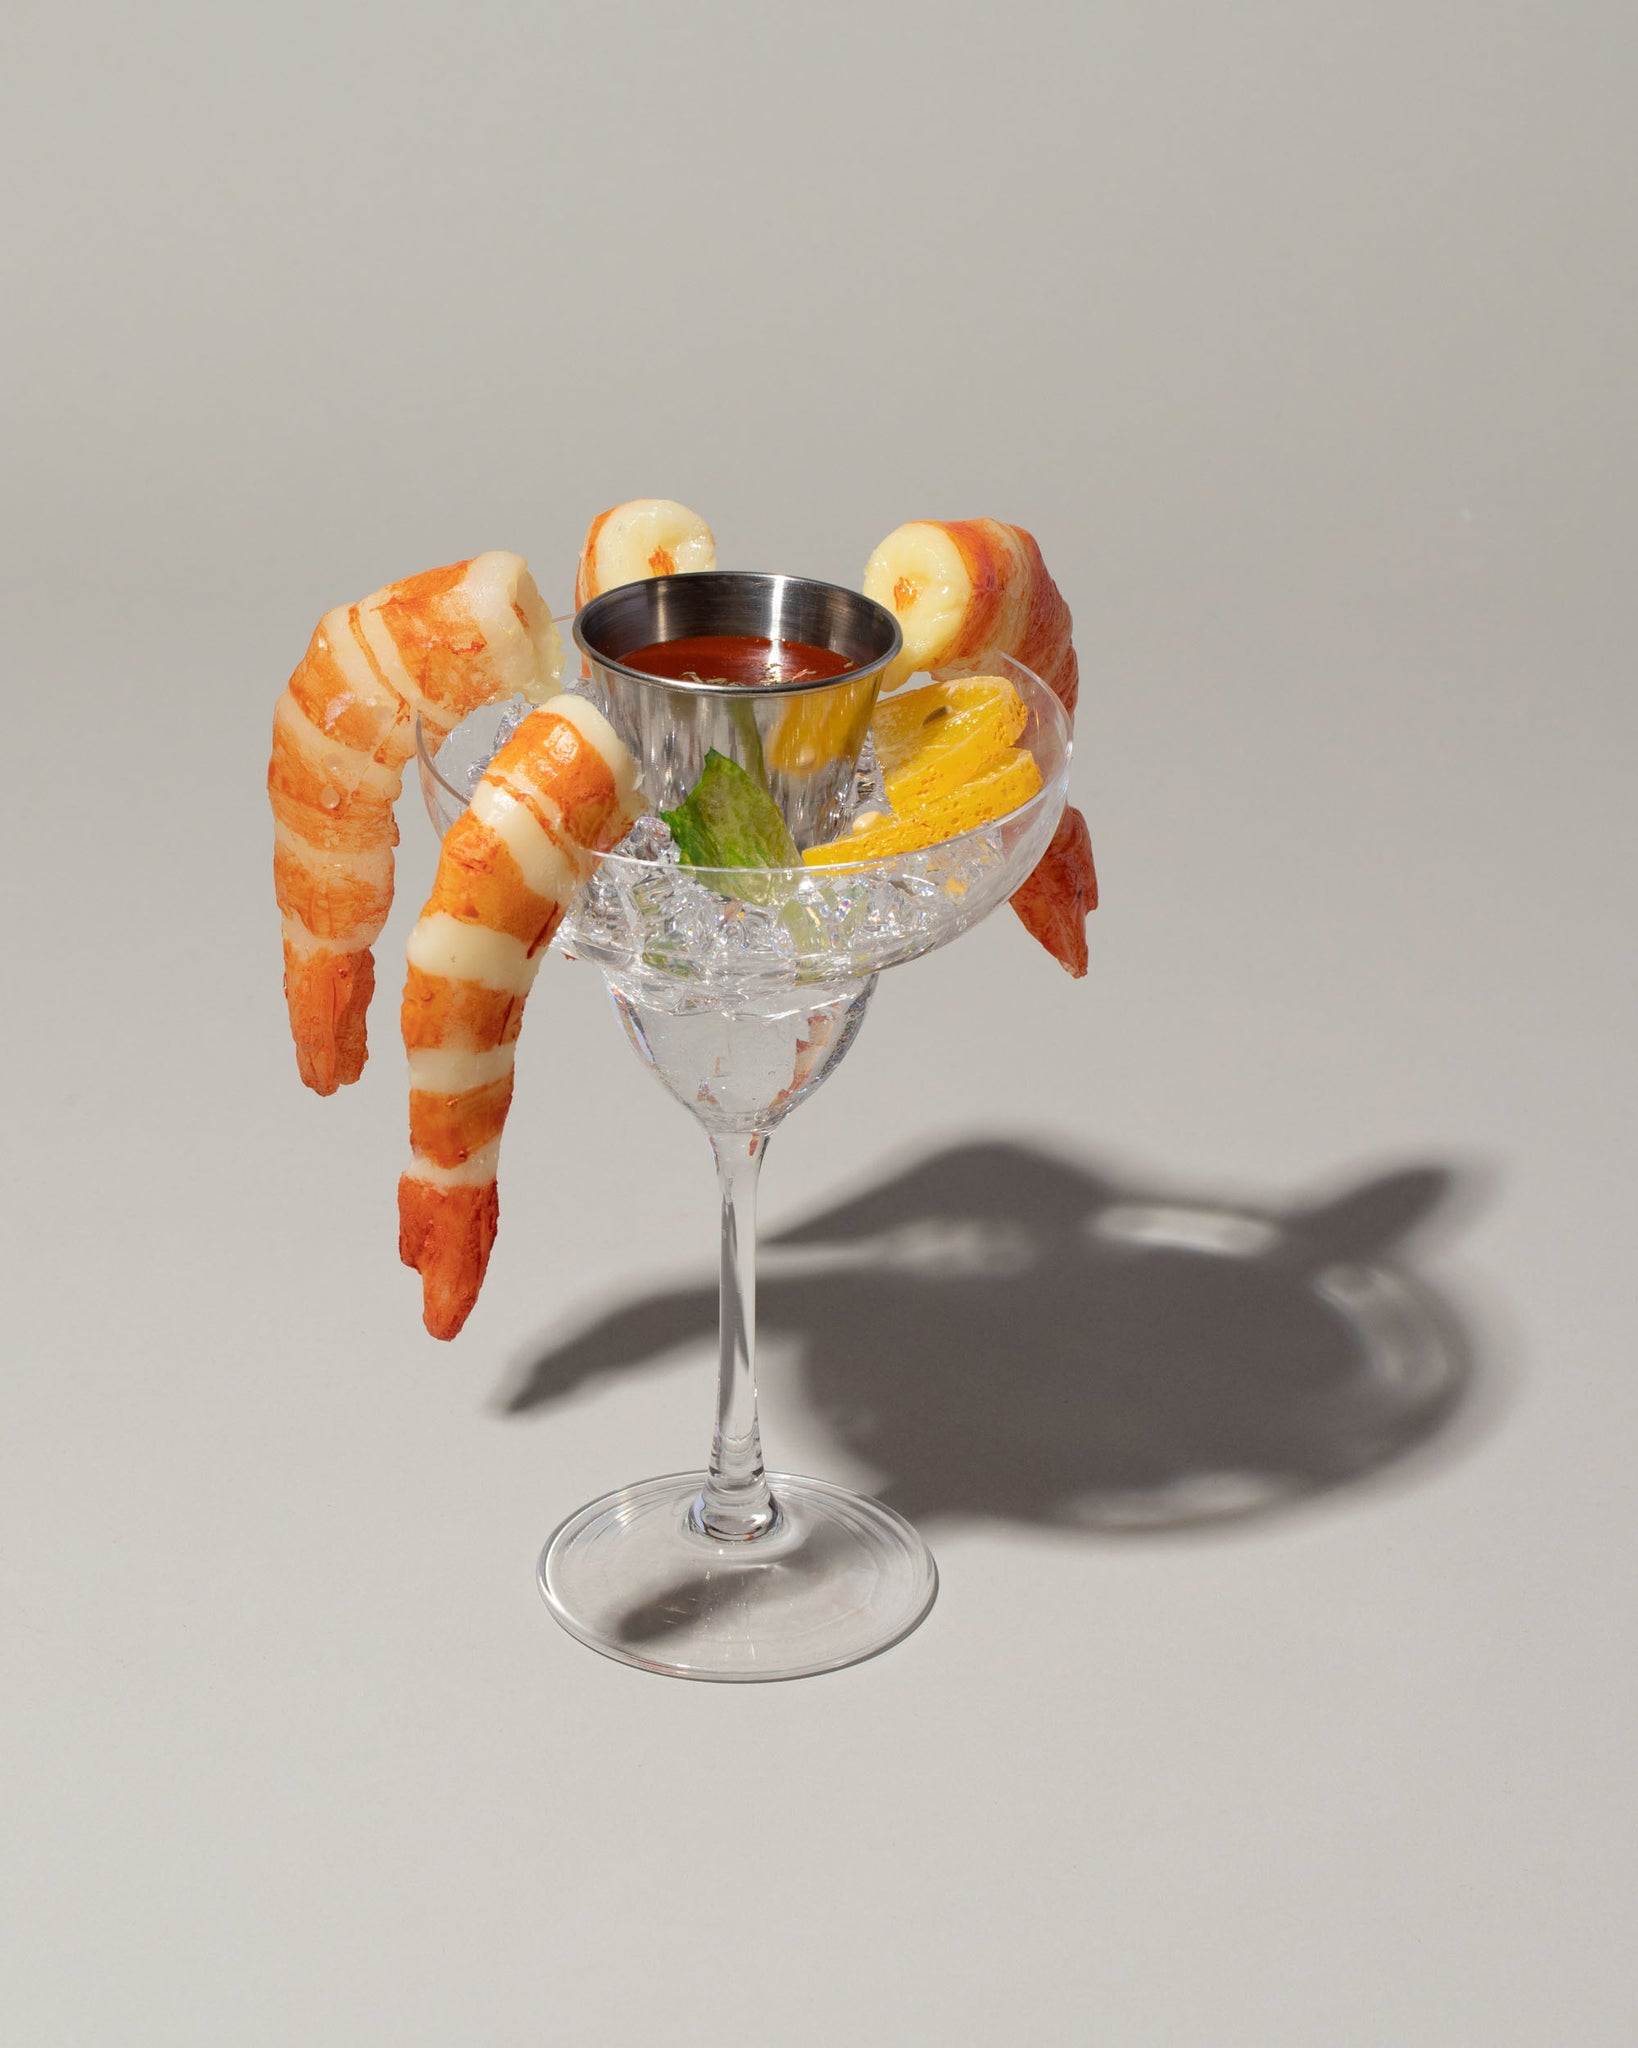 Spills Shrimp Cocktail on light color background